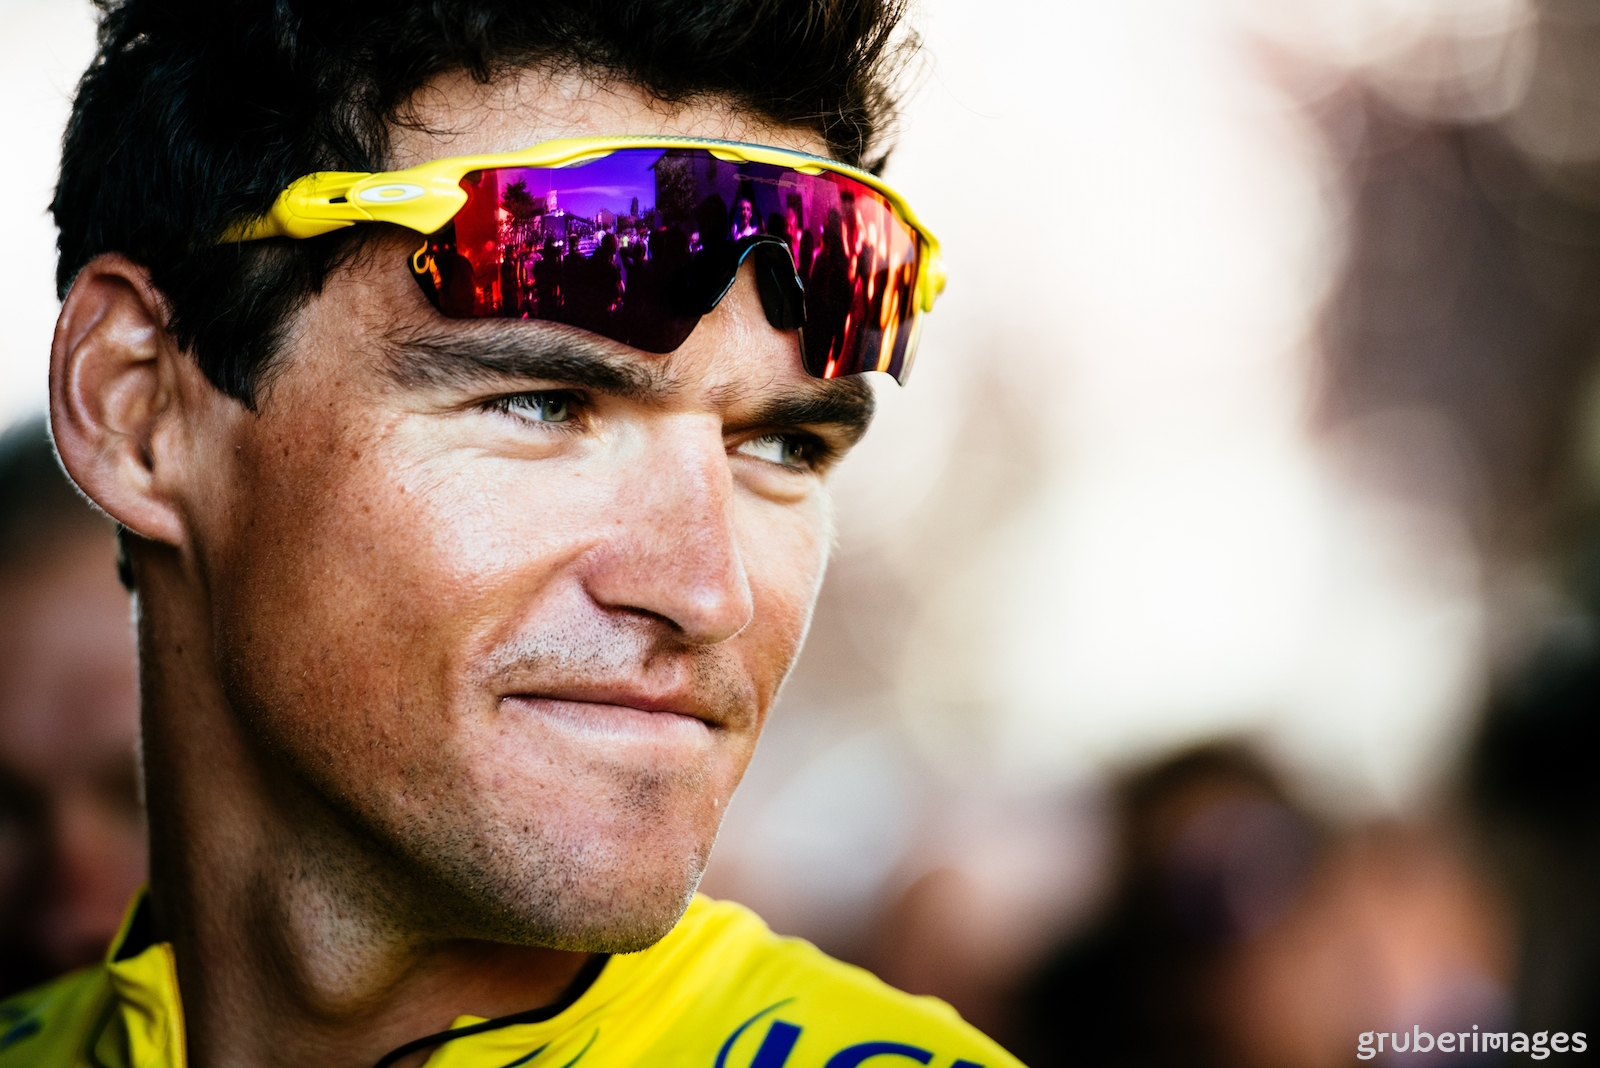 Greg Van Avermaet in Oakley Radar EV Path